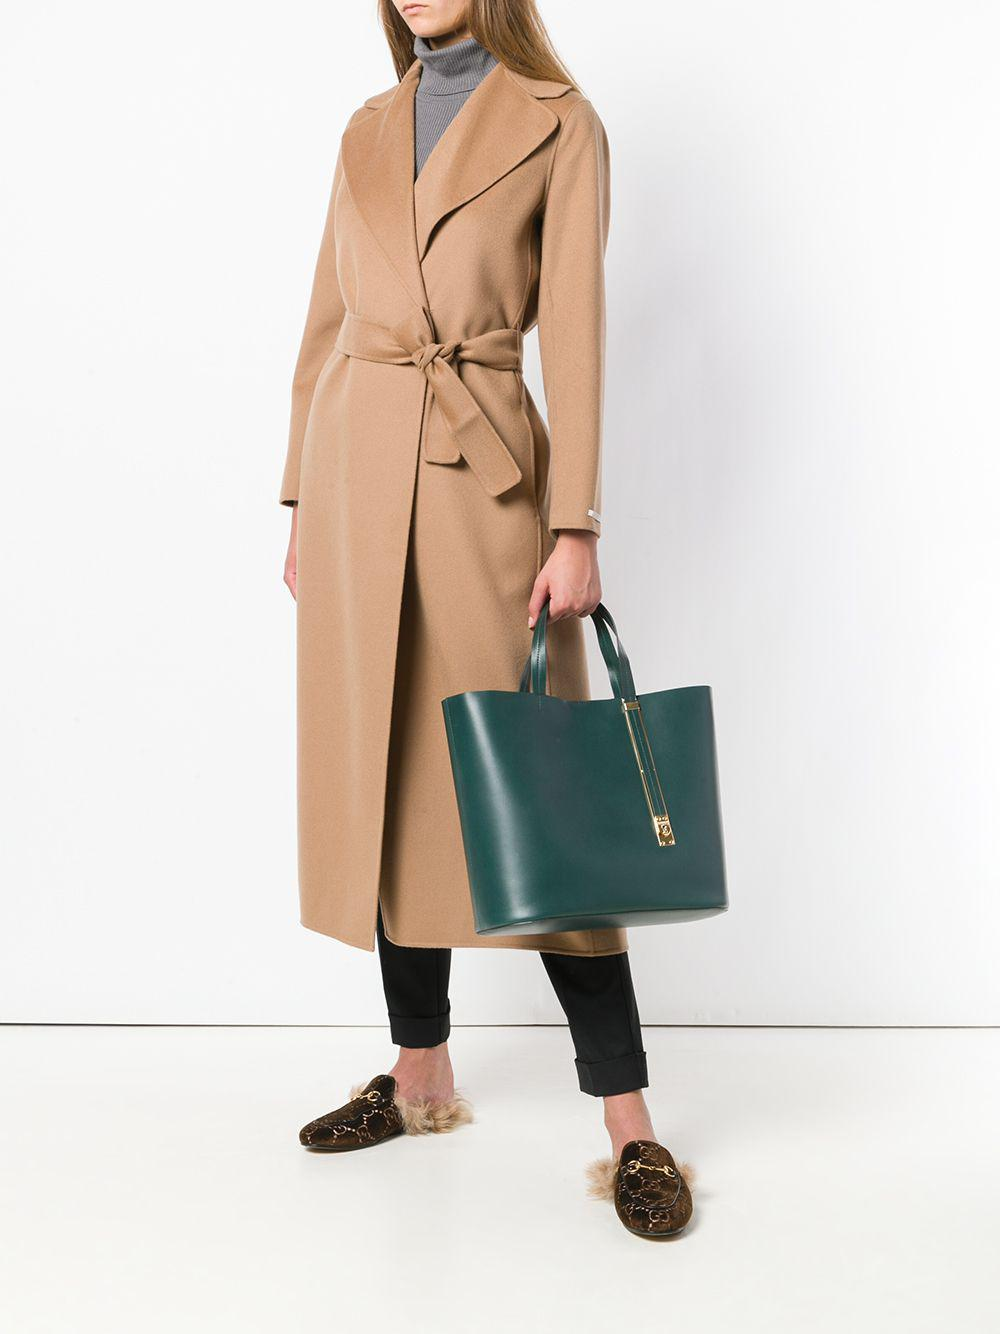 Sophie Hulme Leather Tote Bag in Green